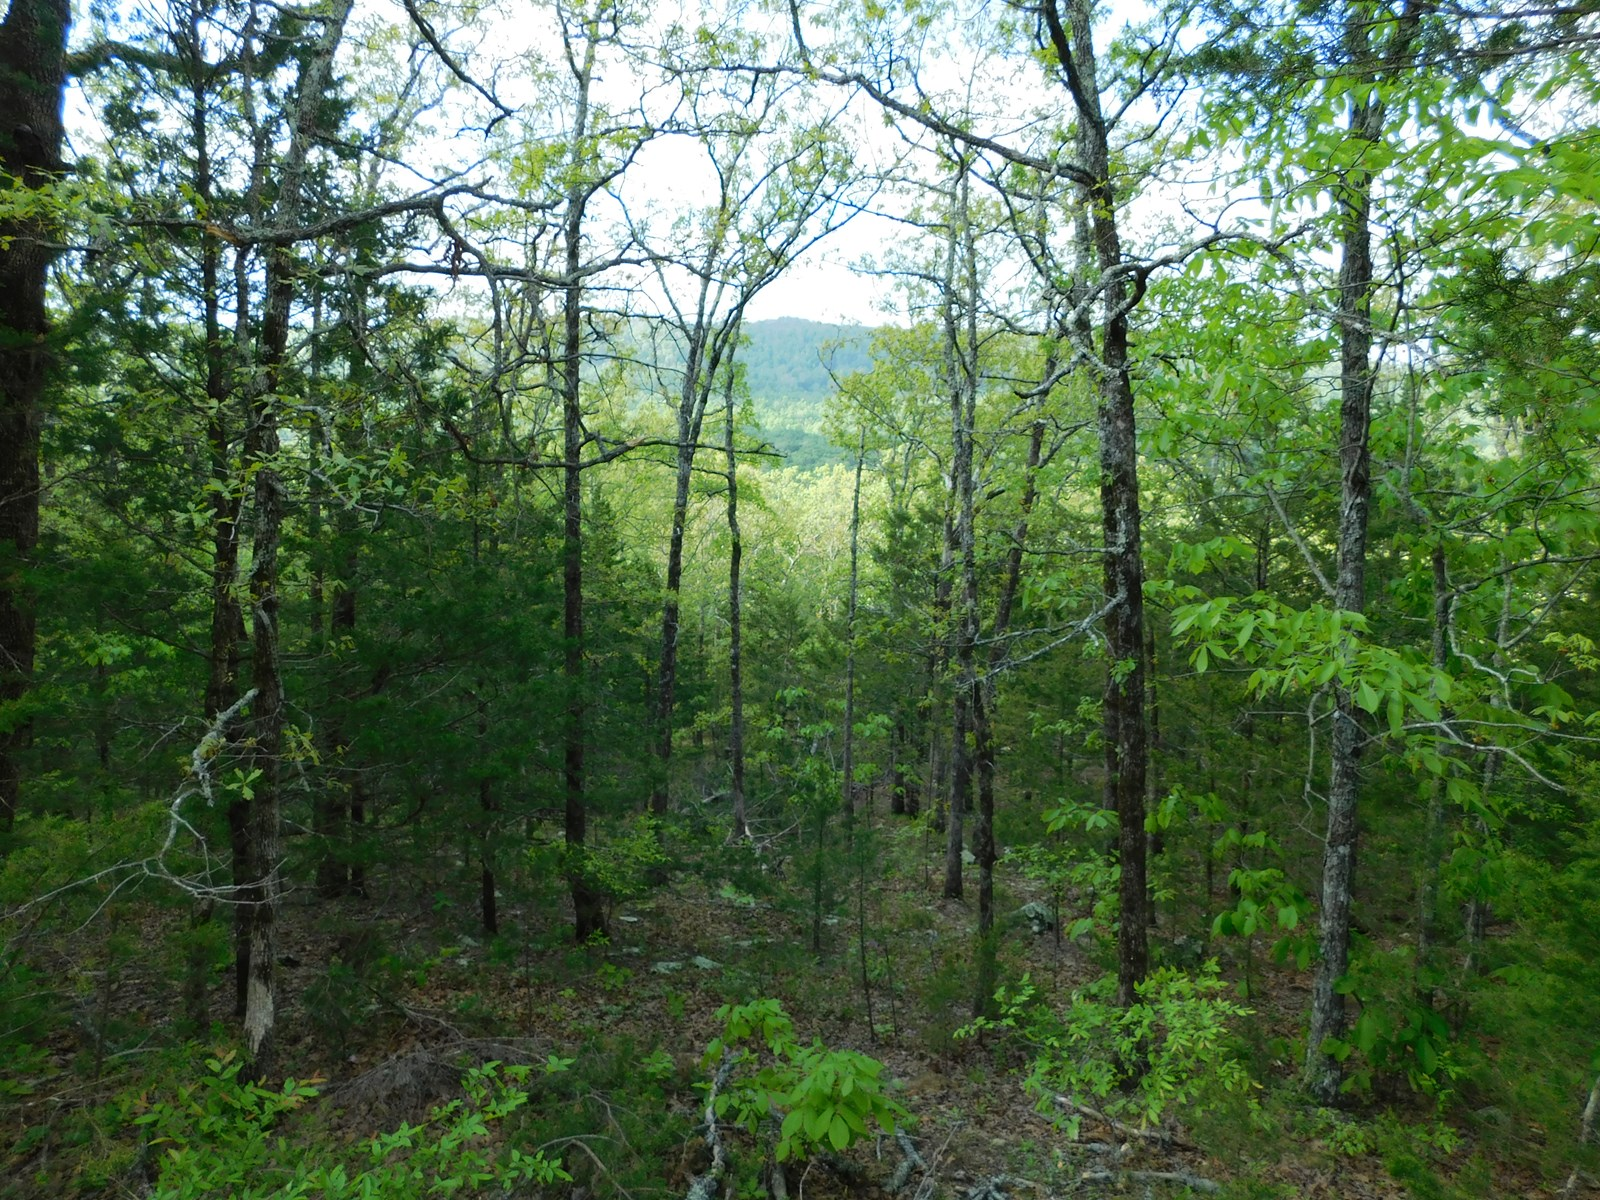 LOT 3 | ARKANSAS OZARK MOUNTAINS | NEWTON COUNTY | PROPERTY